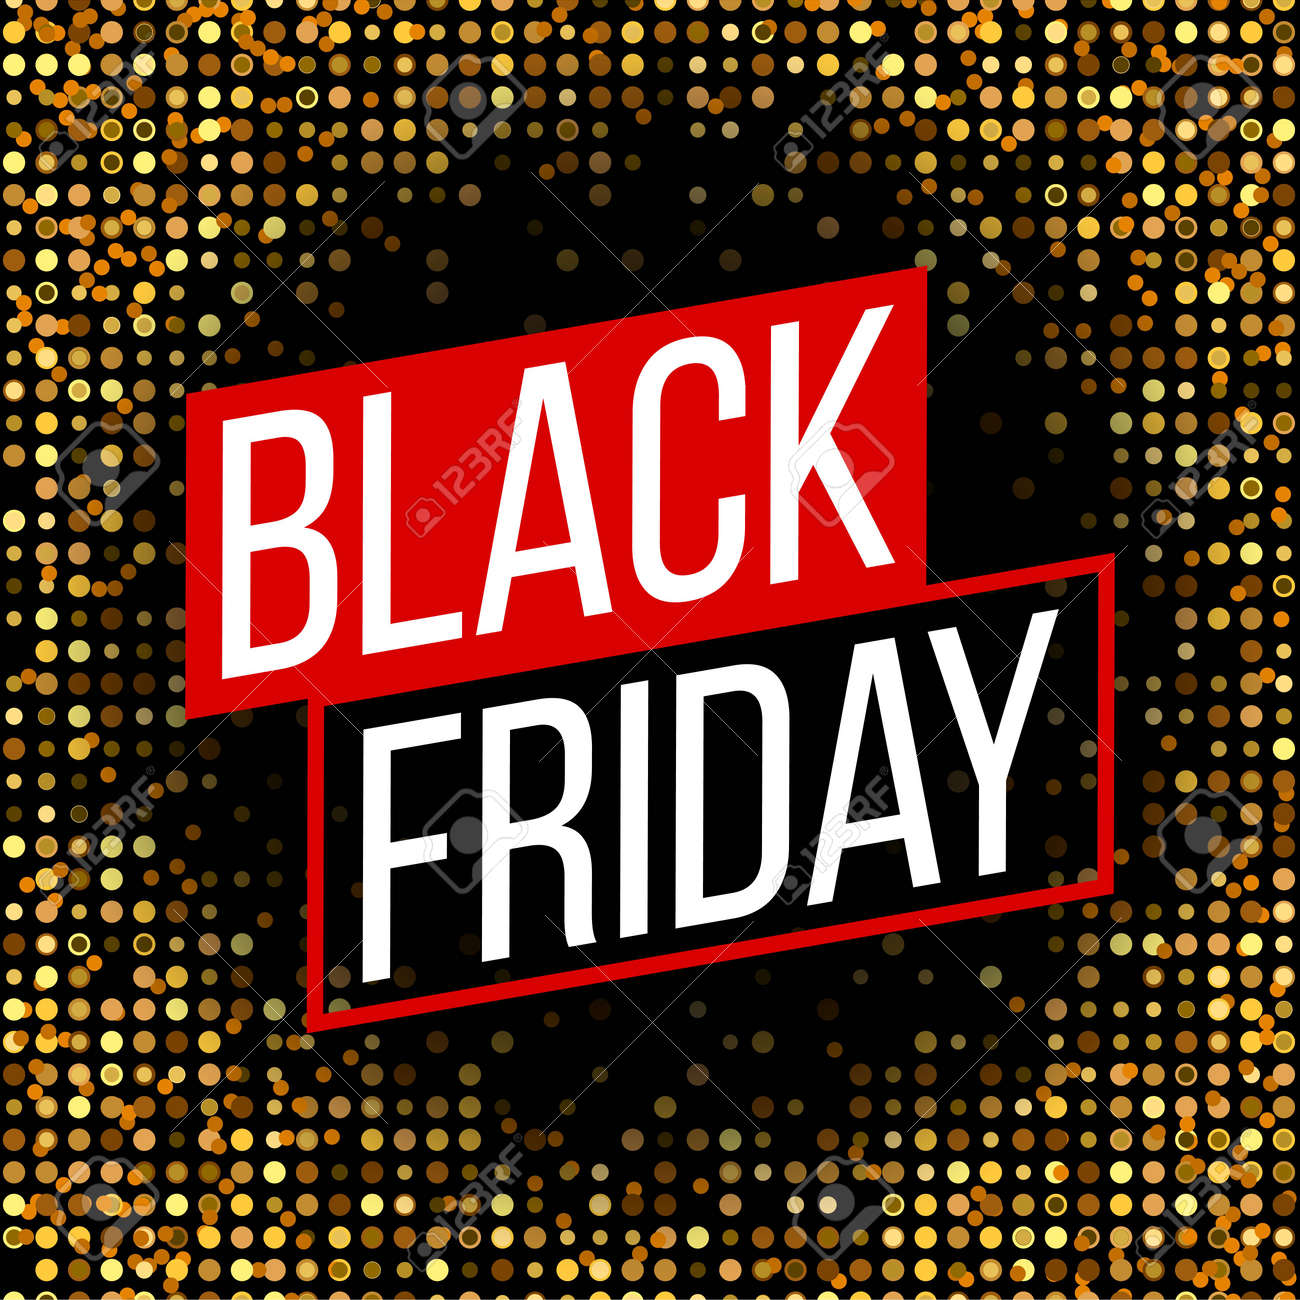 Abstract vector black friday sale layout background. For art template design, list, page, mockup brochure style, banner, idea, cover, booklet, print, flyer, book, blank, card, ad, sign, poster, badge. - 87283744